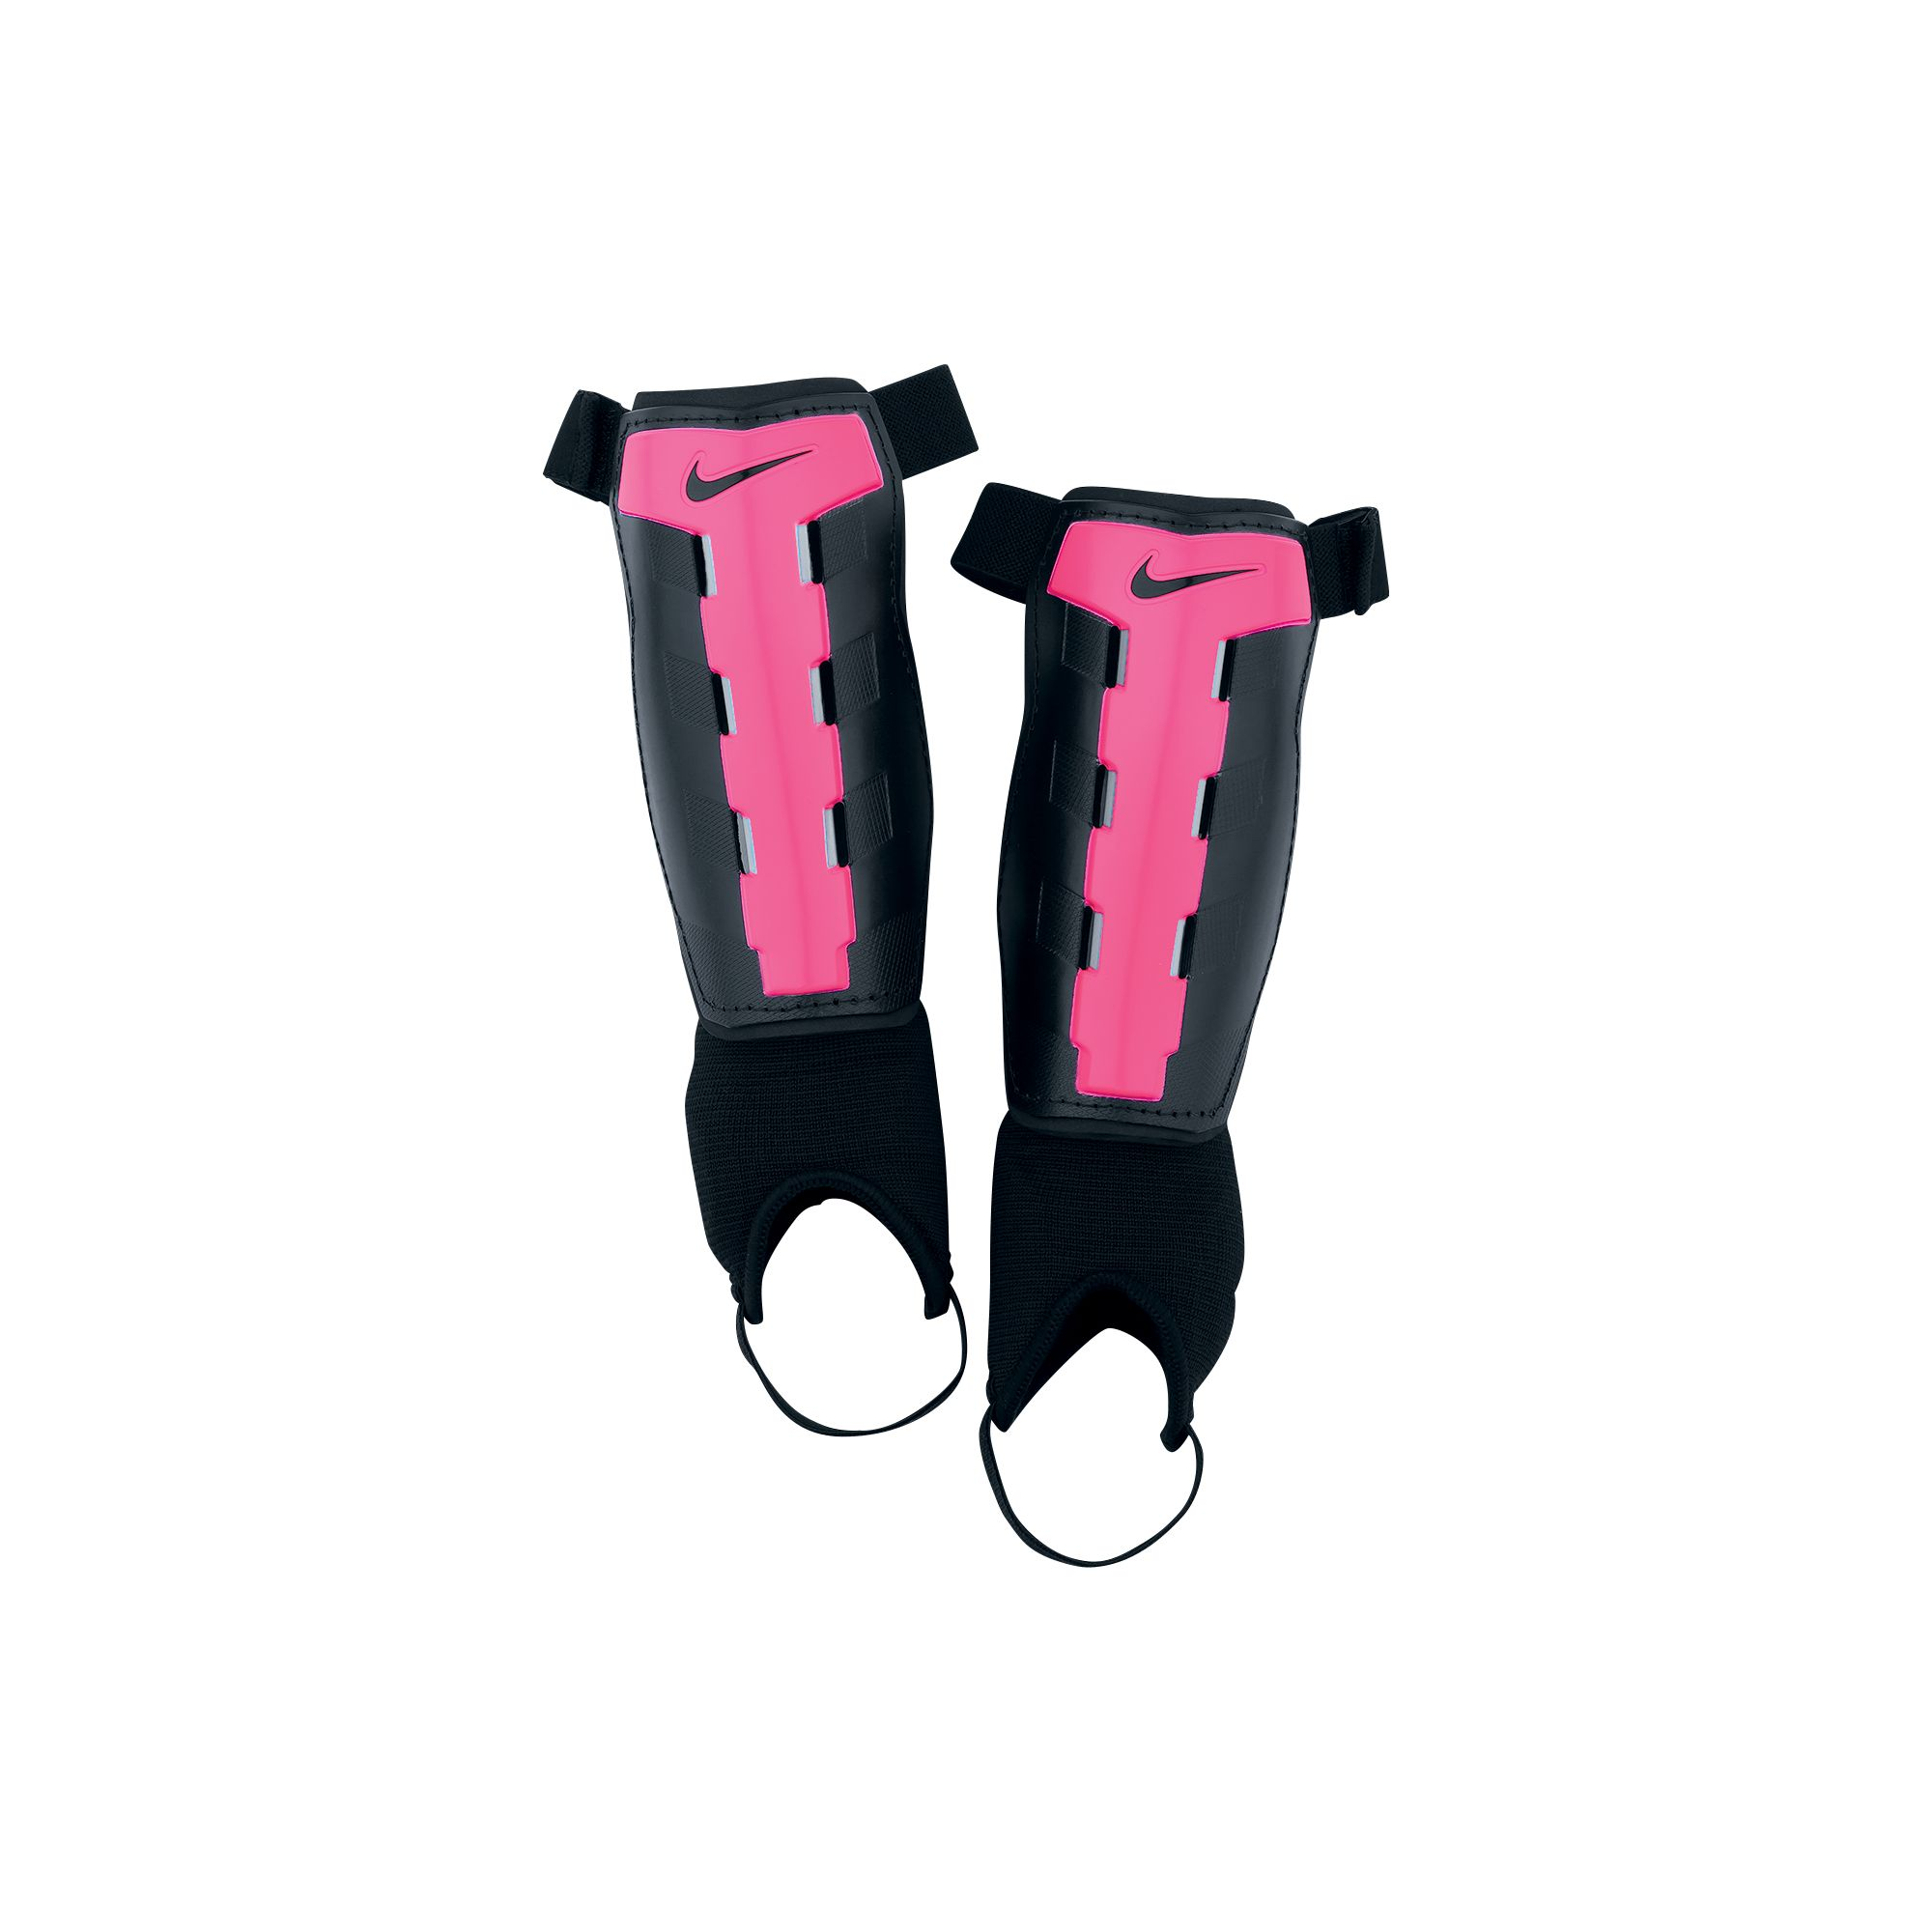 Youth Charge Shin Guards, Pink/Black, swatch